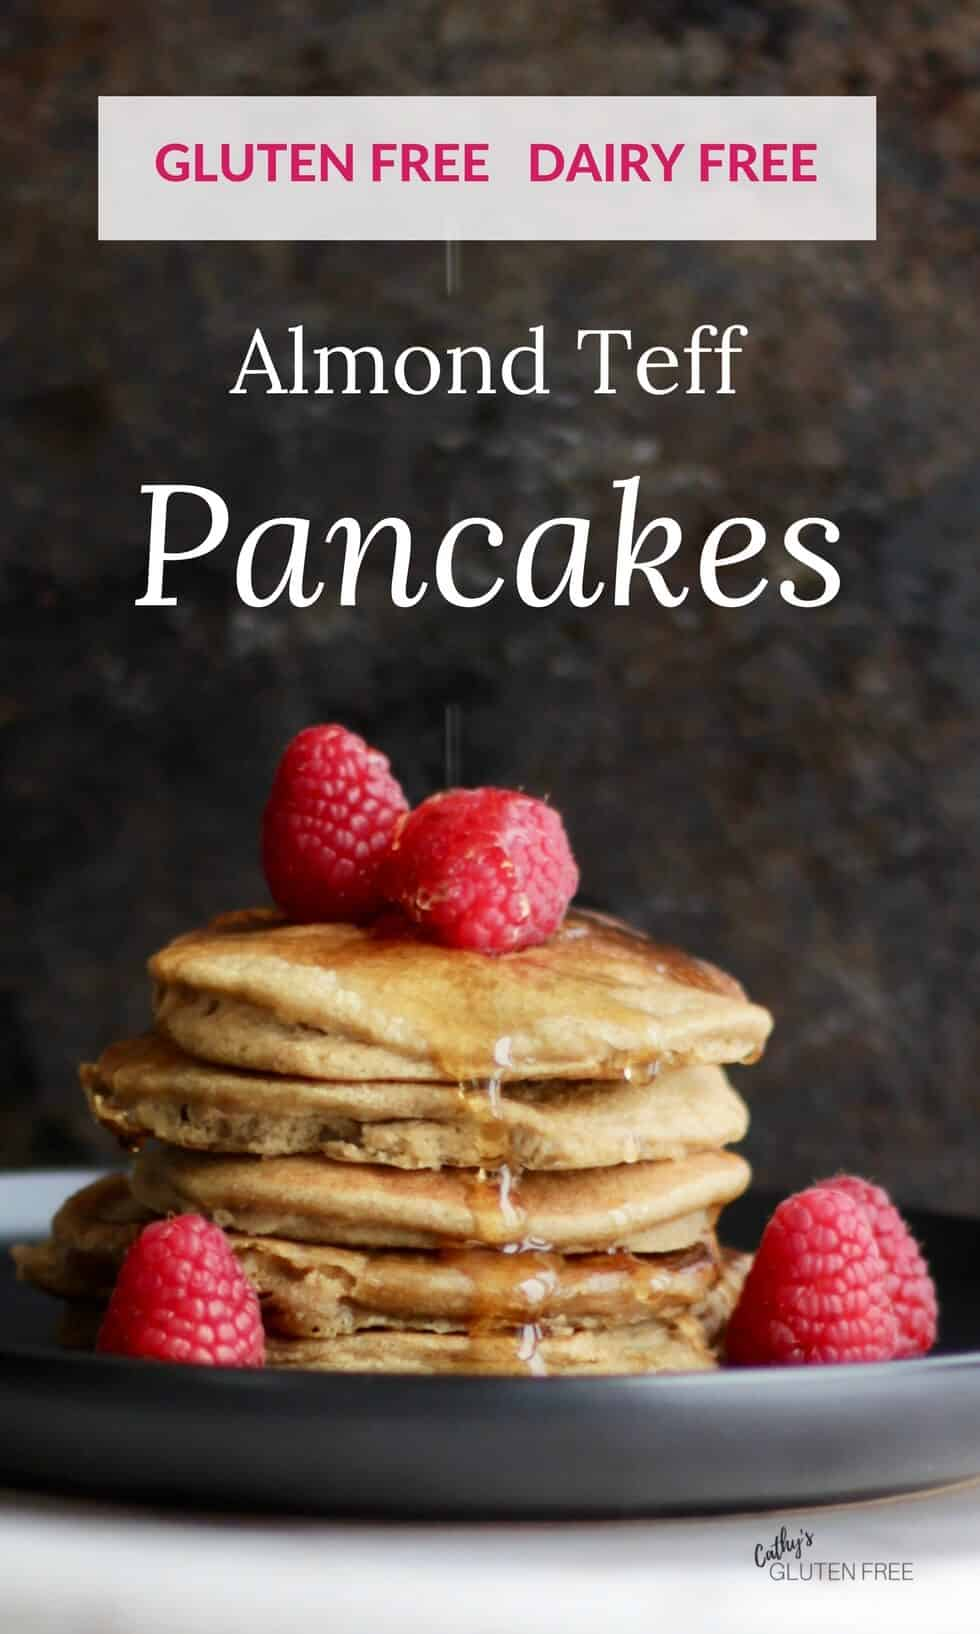 Almond Teff Pancakes are gluten free and dairy free.